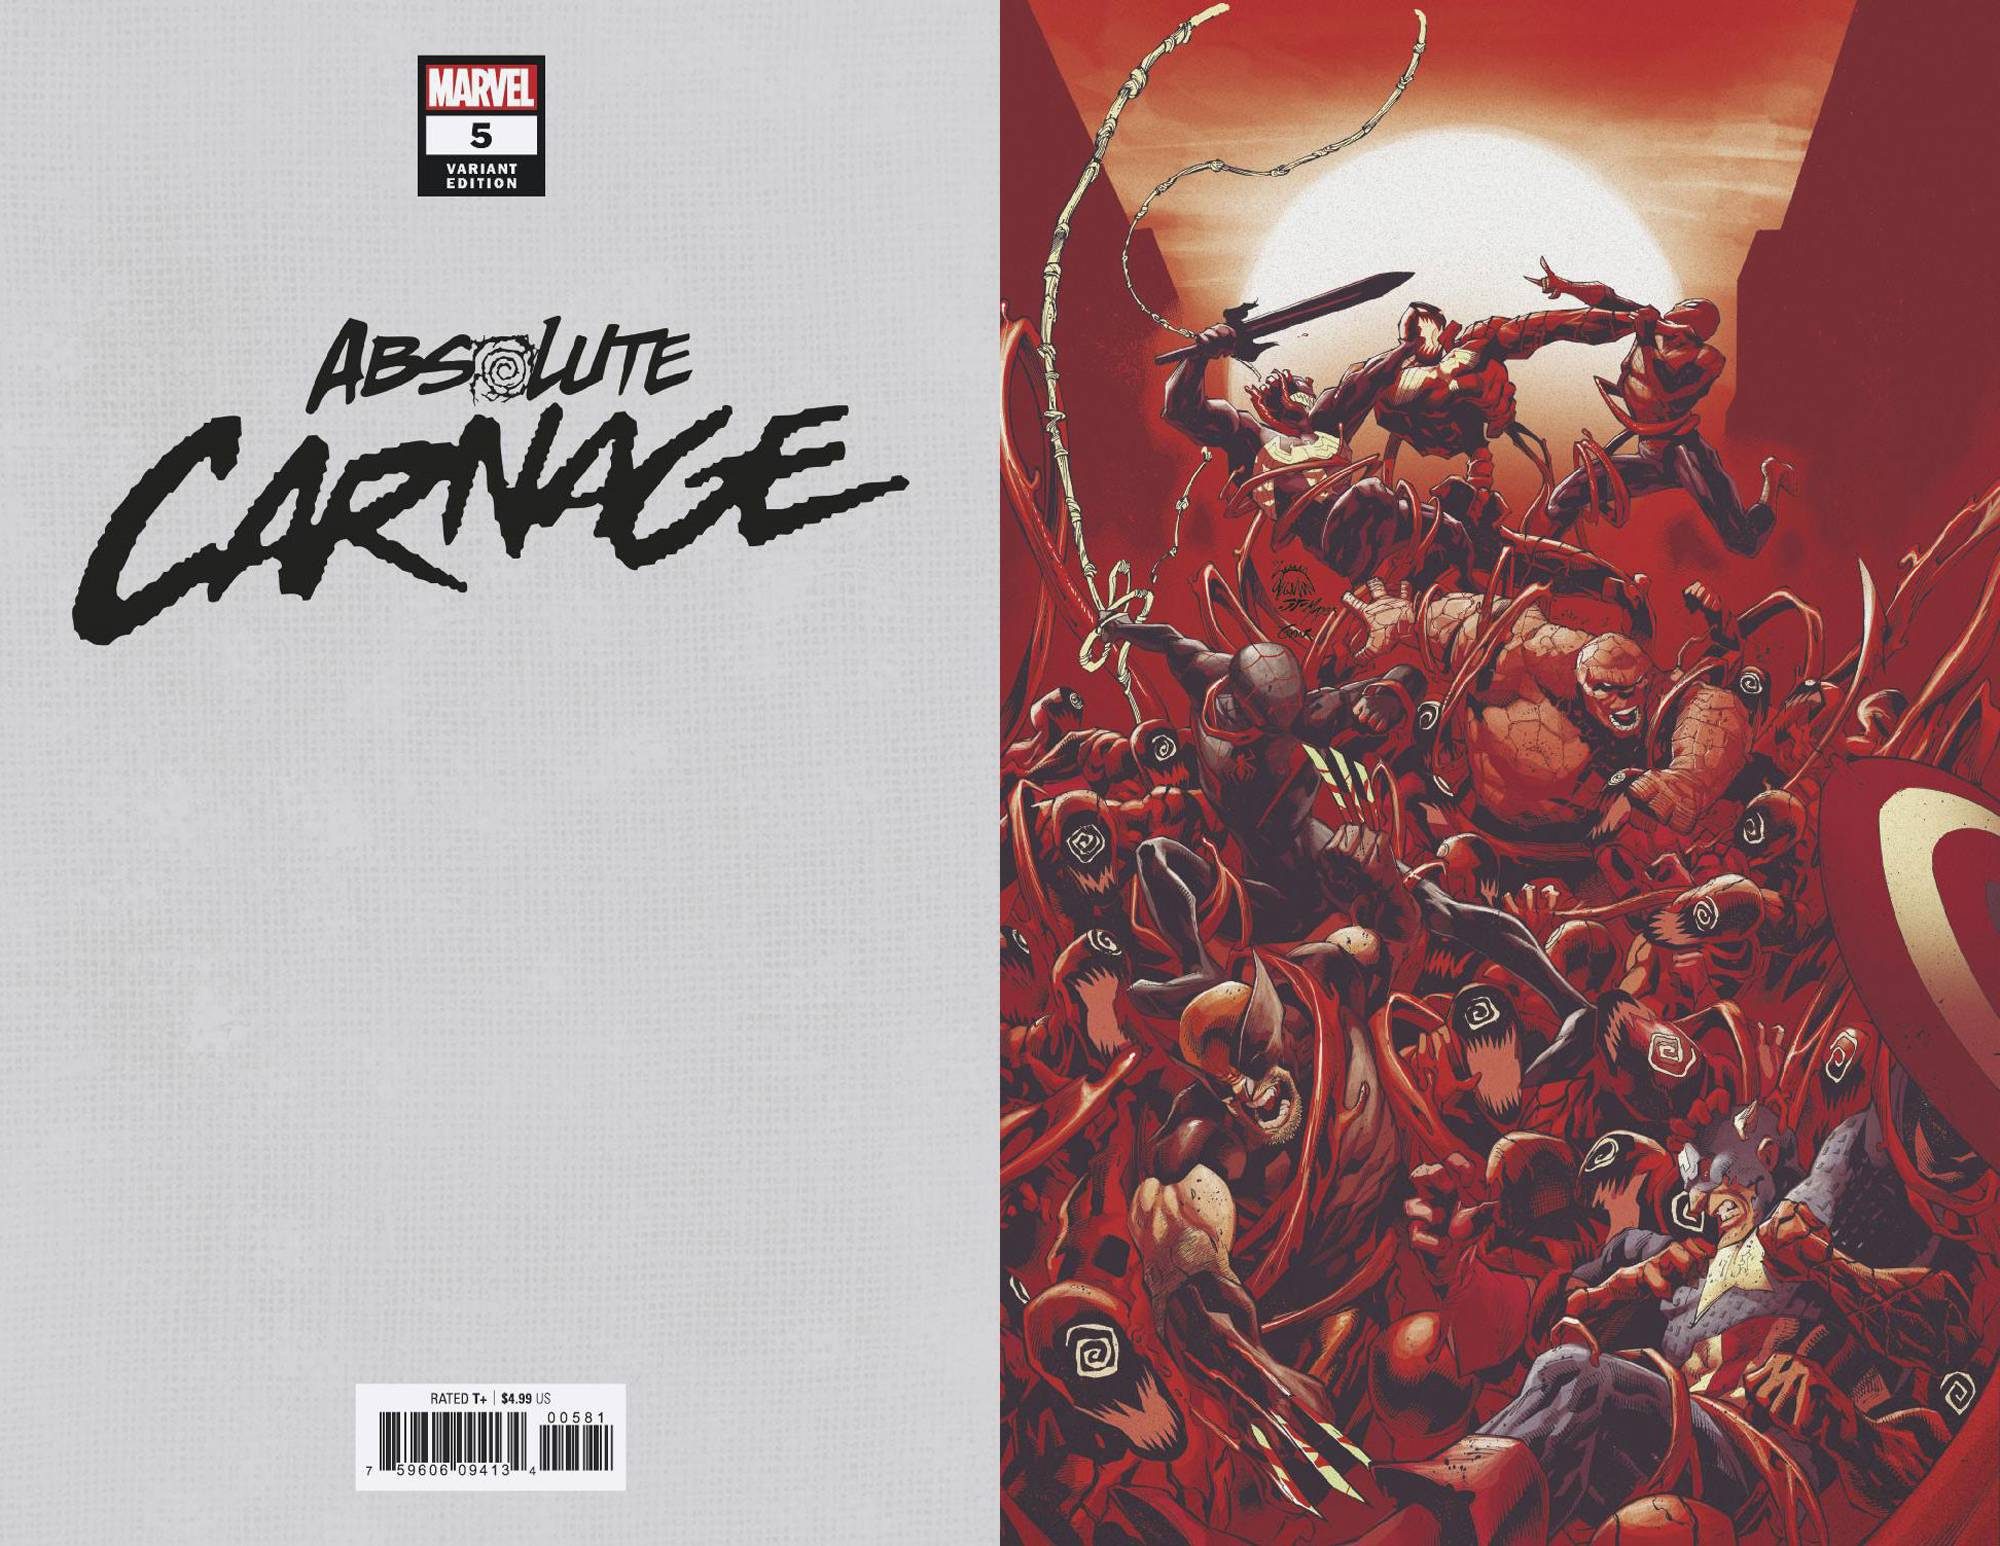 11/20/2019 ABSOLUTE CARNAGE #5 (OF 5) STEGMAN 1:100 VIRGIN VARIANT